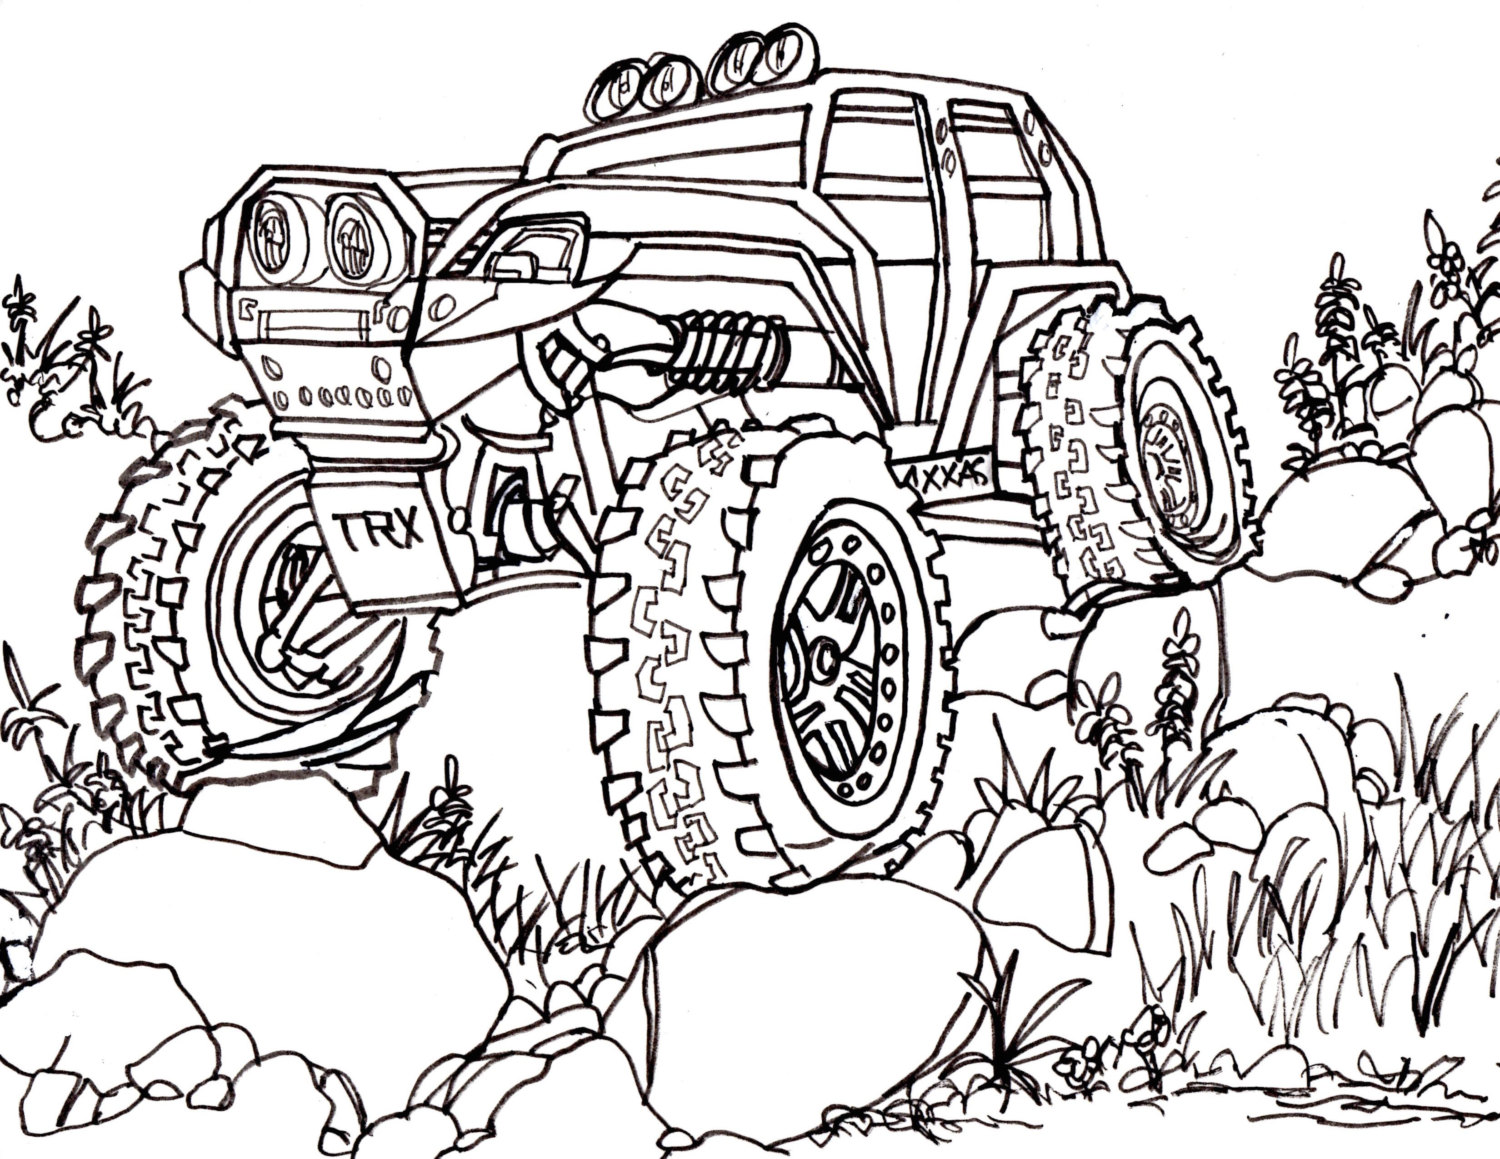 ups truck drawing at getdrawings free for personal use ups OBS Chevy Sport 1500x1159 5 traxxas summit coloring pages drawing truck 4x4 rc